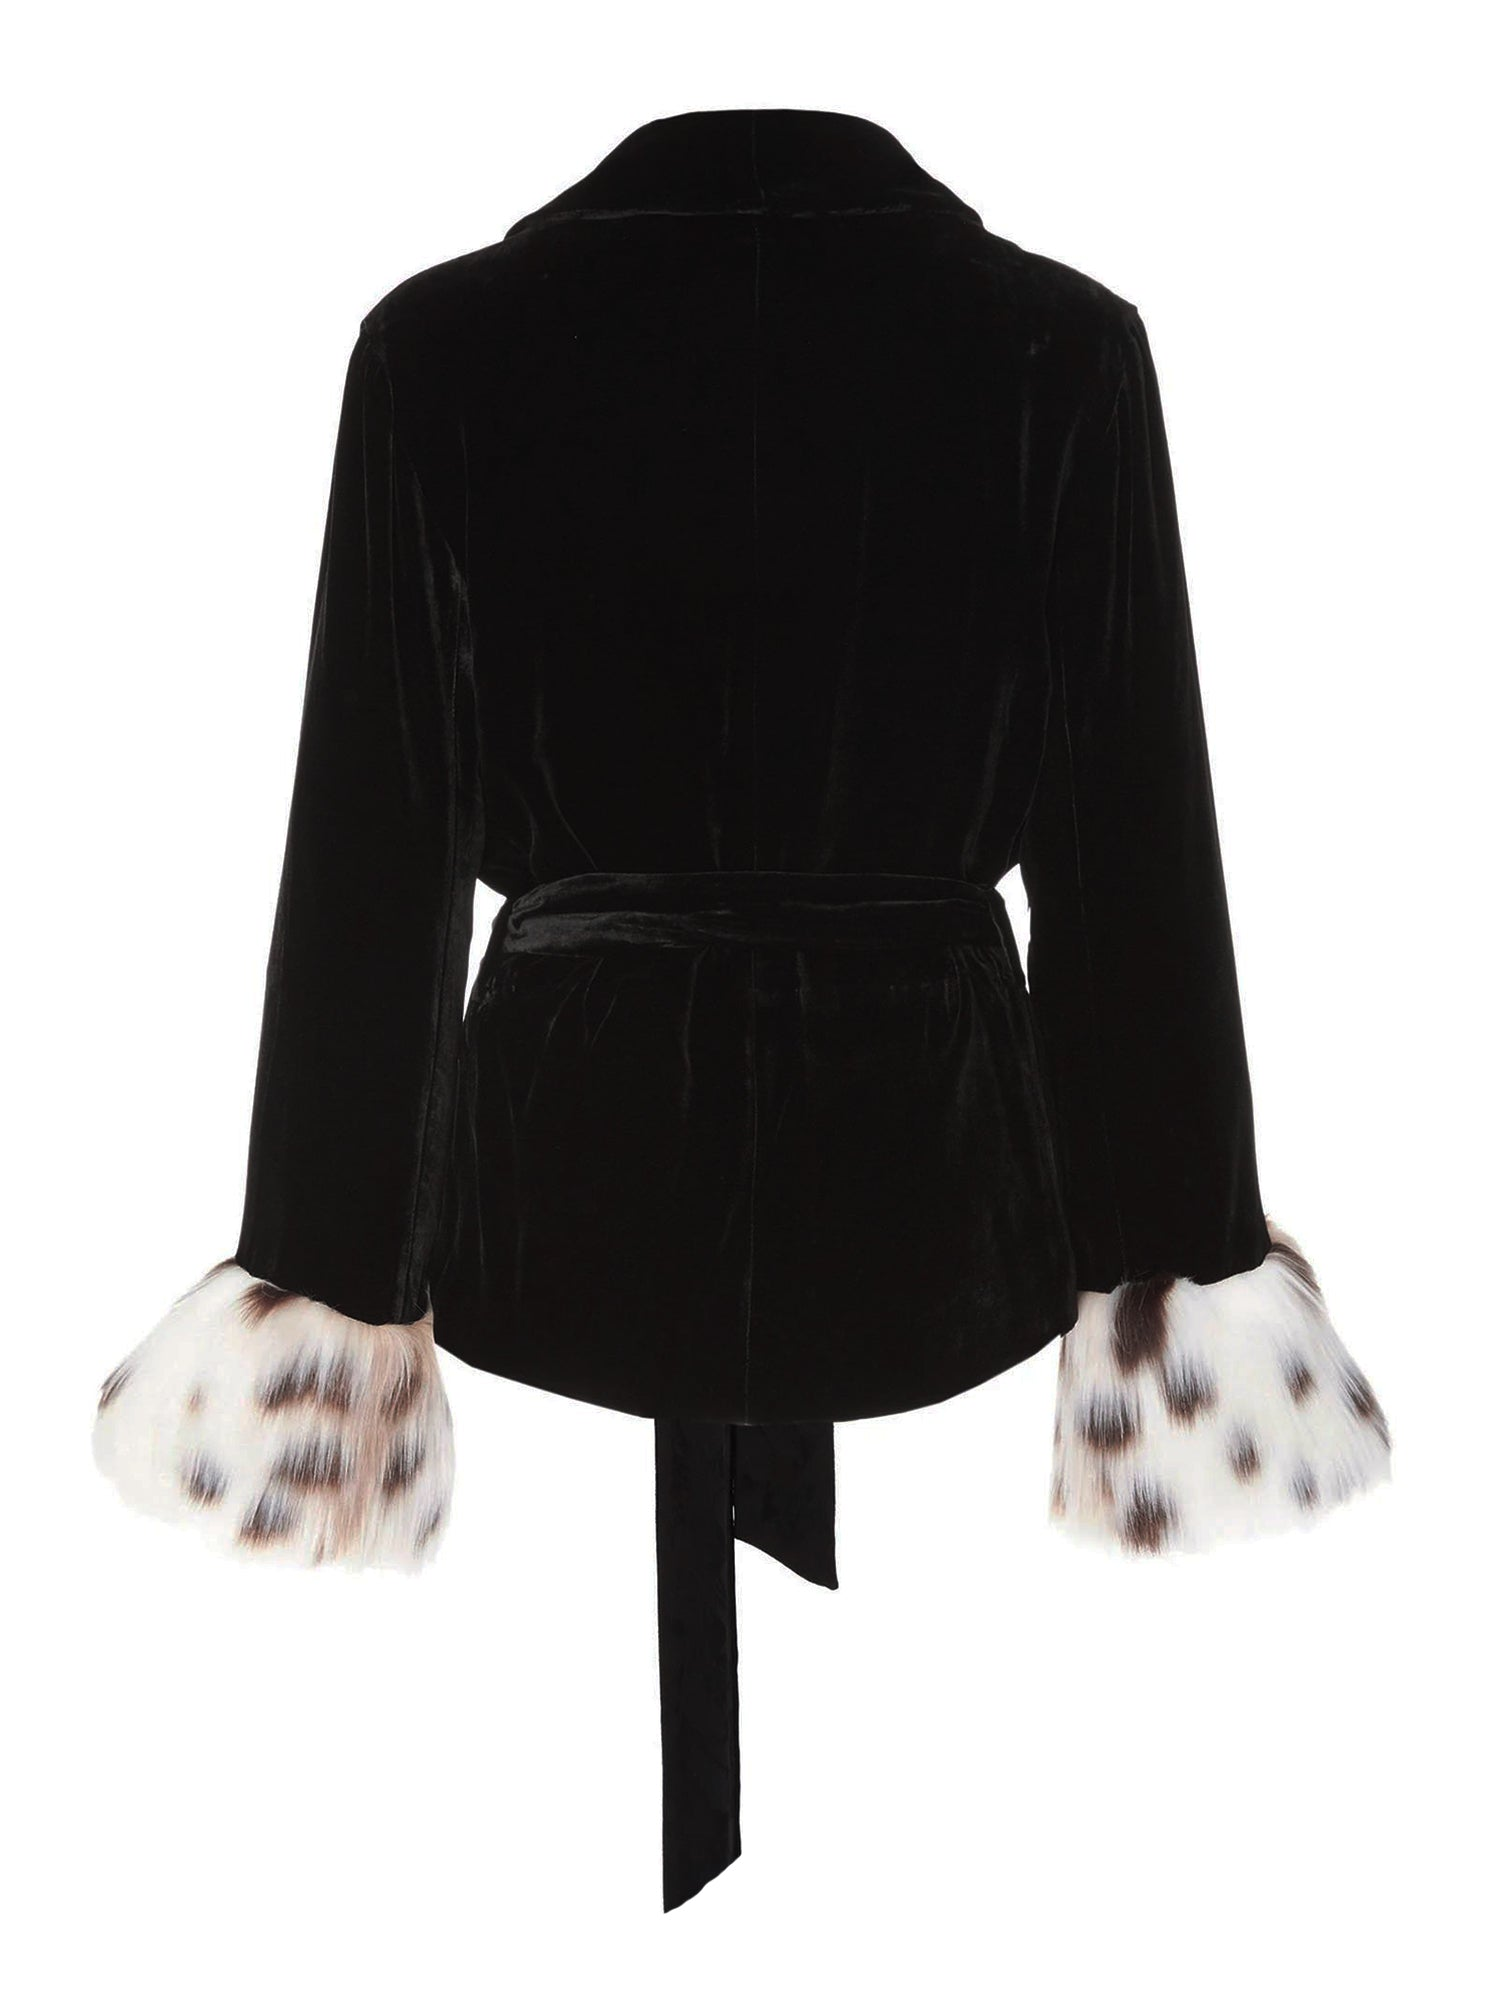 A Packshot Of Marei1998's Clarkia Silk Velvet Jacket In Black Color. Featuring Lapel Collar and Bell Sleeves, Trimmed With Contrasting Linca Color (Delicate Leopard Design) Faux Fur. Matching Tip-up Belt To Define The Waist. Back View. Resort 2020 Collection - Furless Friendship.